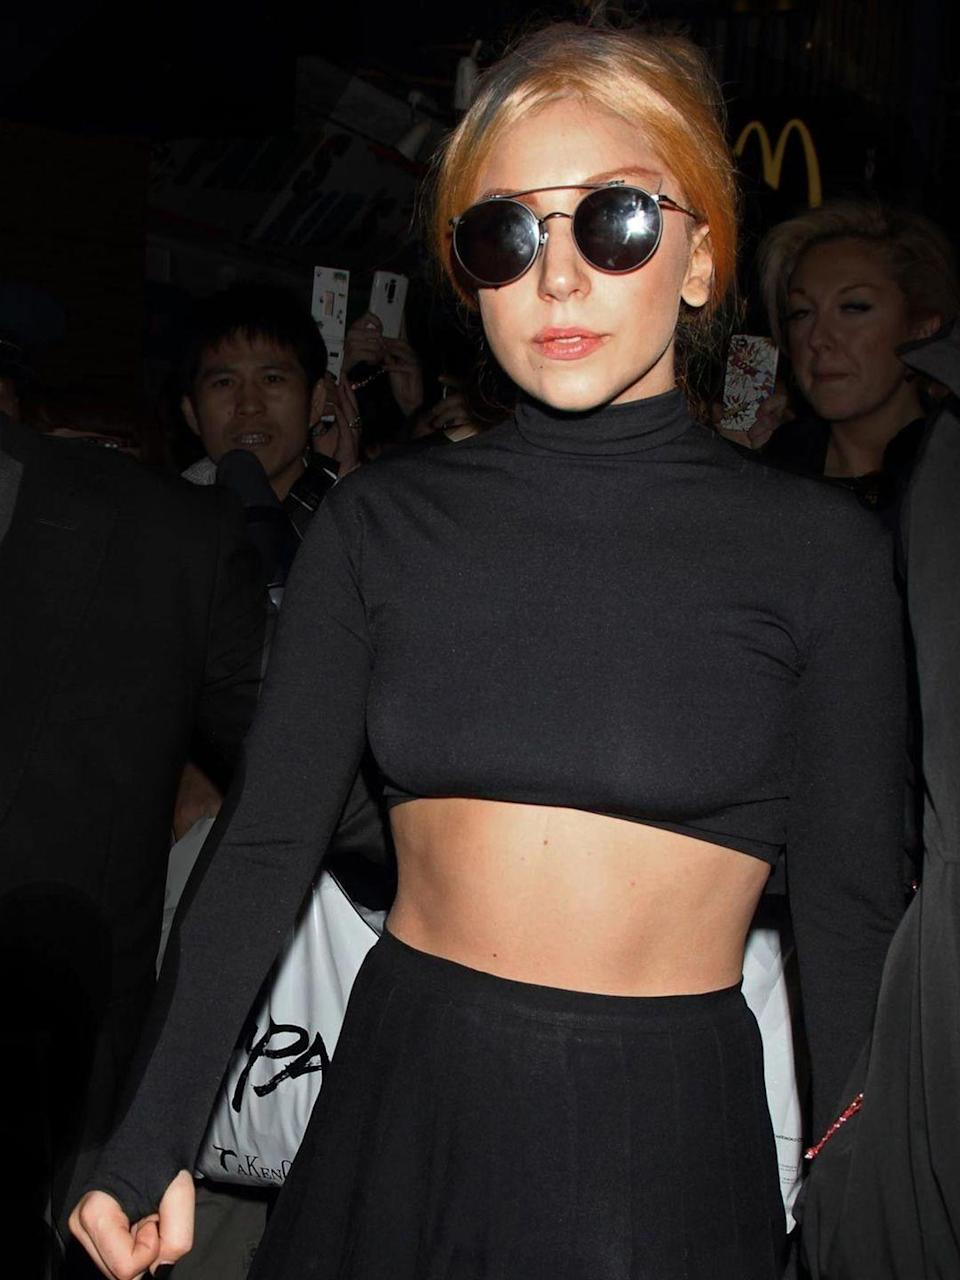 <p>Lady Gaga is spotted wearing a simple black cropped top and skirt with a pair of round frame sunglasses, from Thom Browne's first eyewear collection which is under a licensee agreement with DITA eyewear whilst out and about in Tokyo, May 2012.</p>